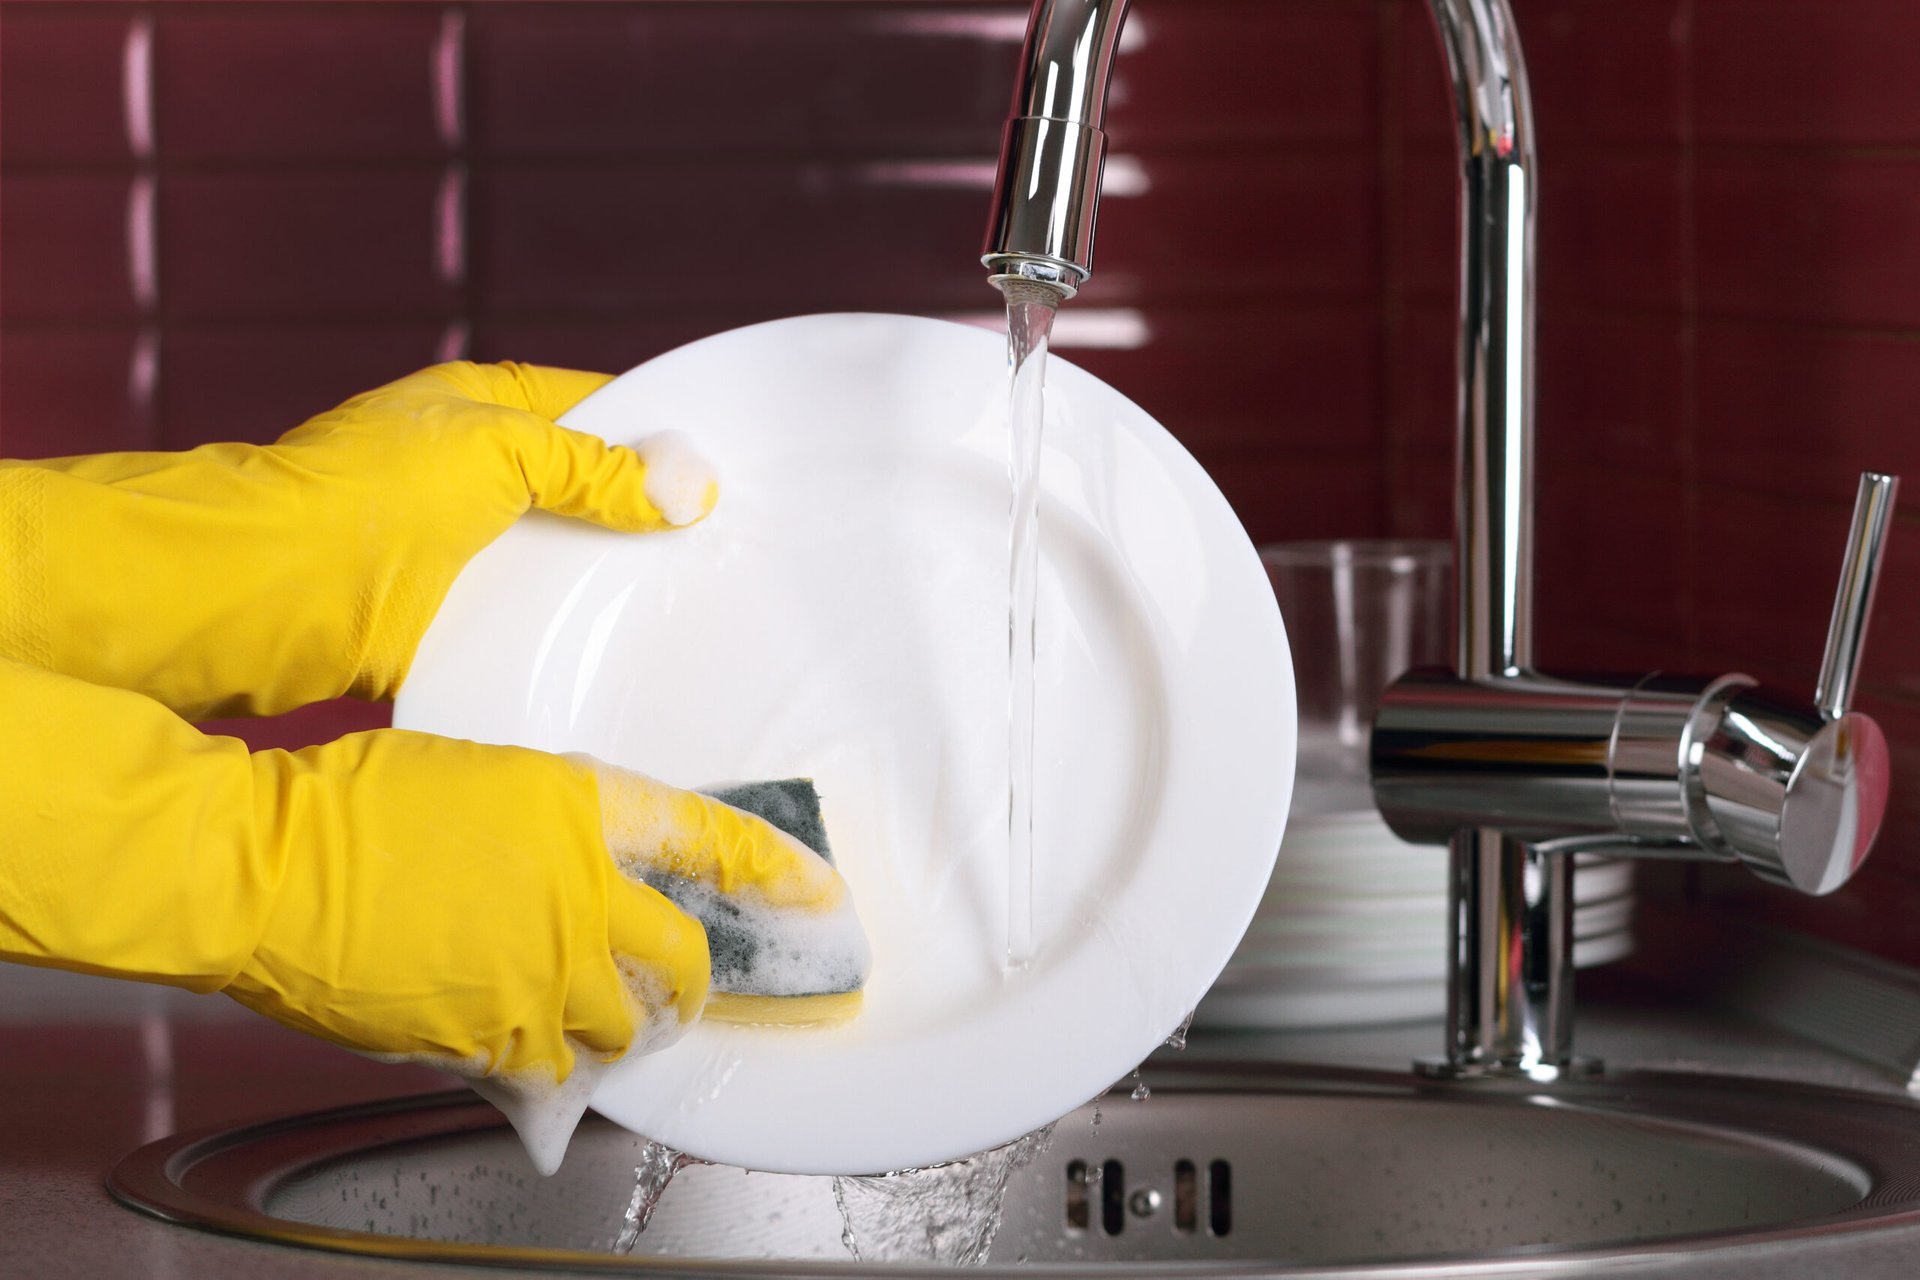 Washing dishes by hand